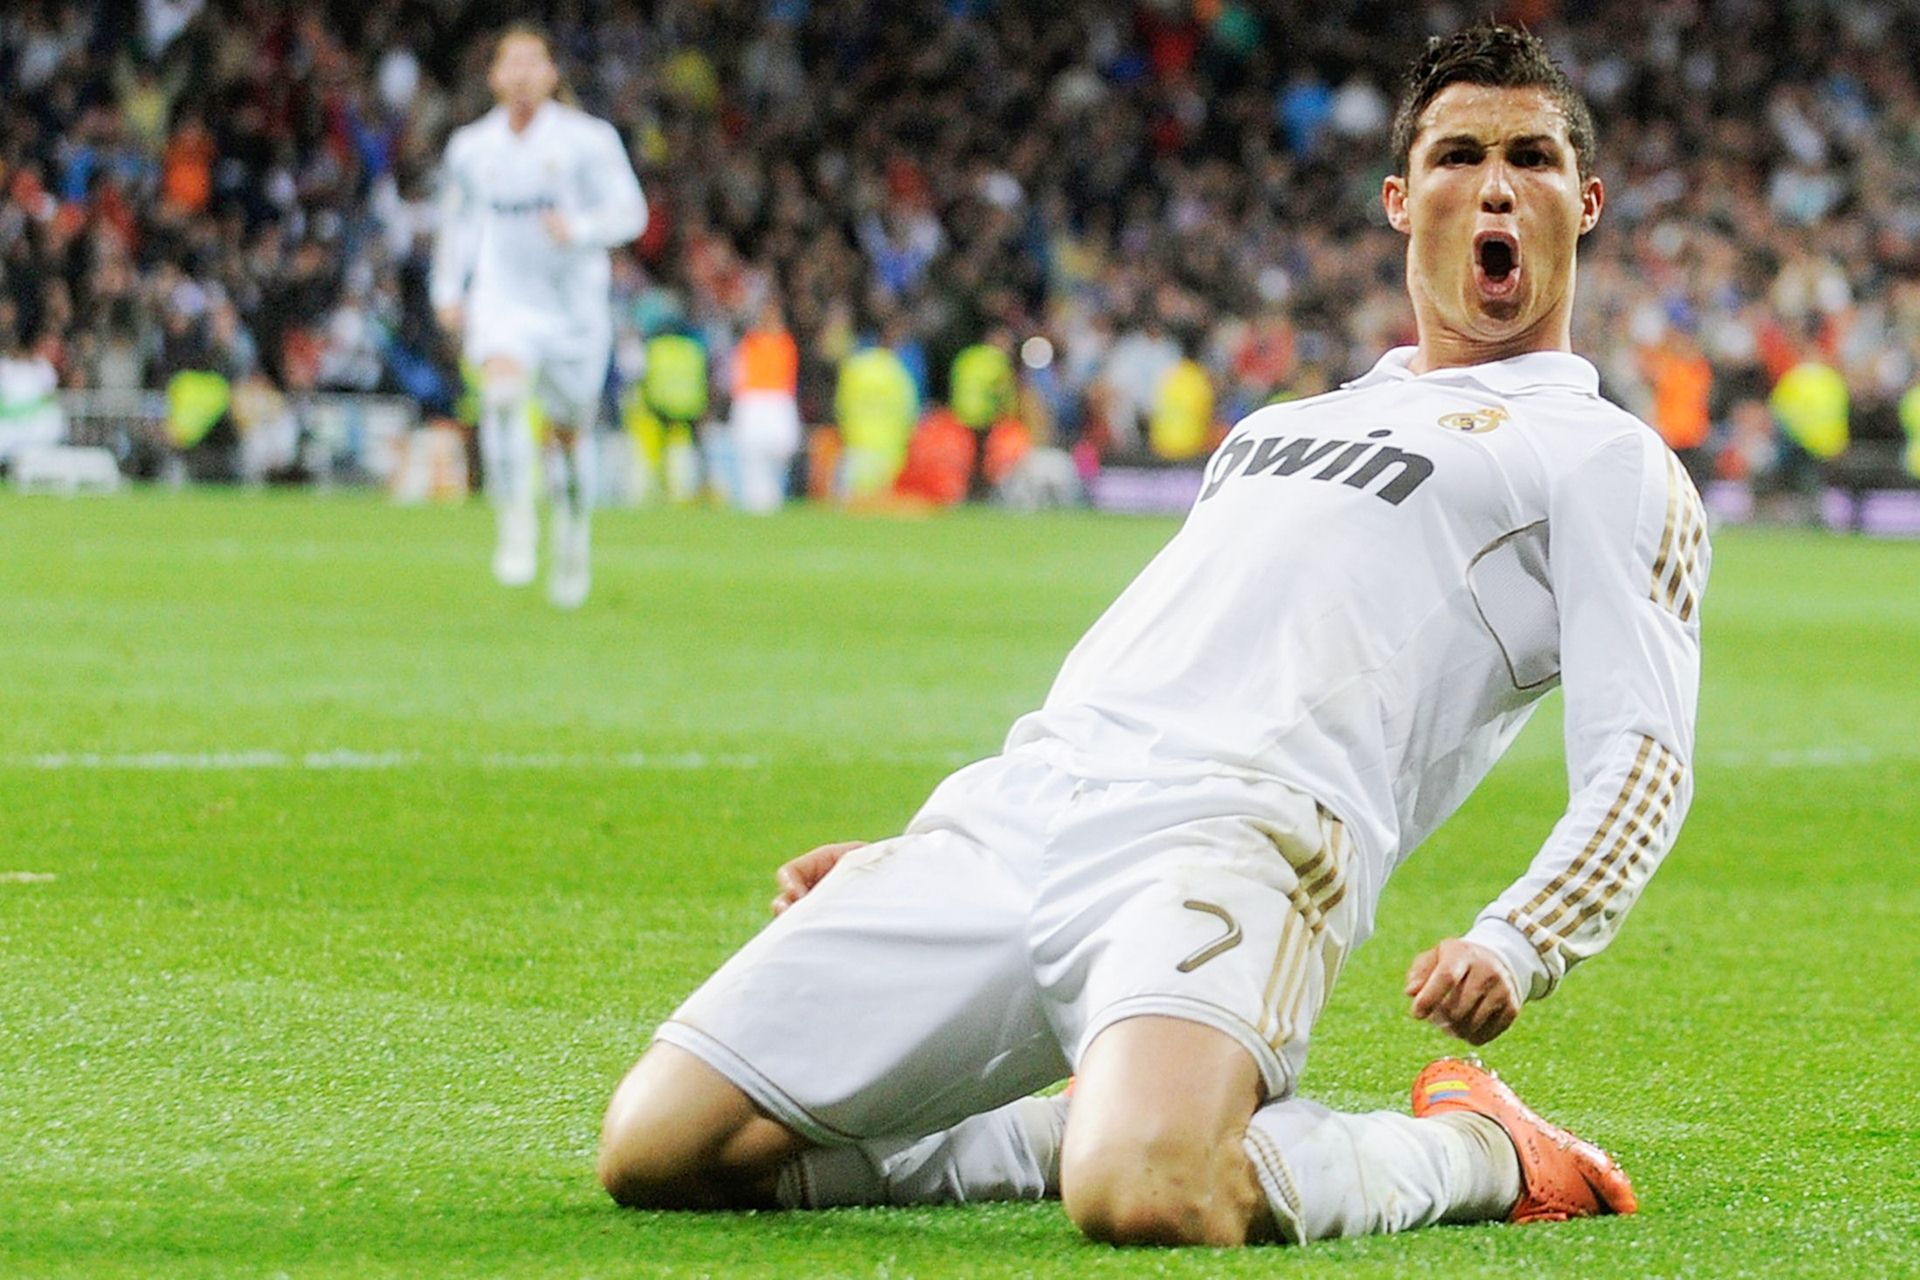 Cristiano Ronaldo Wallpapers HD penalty win